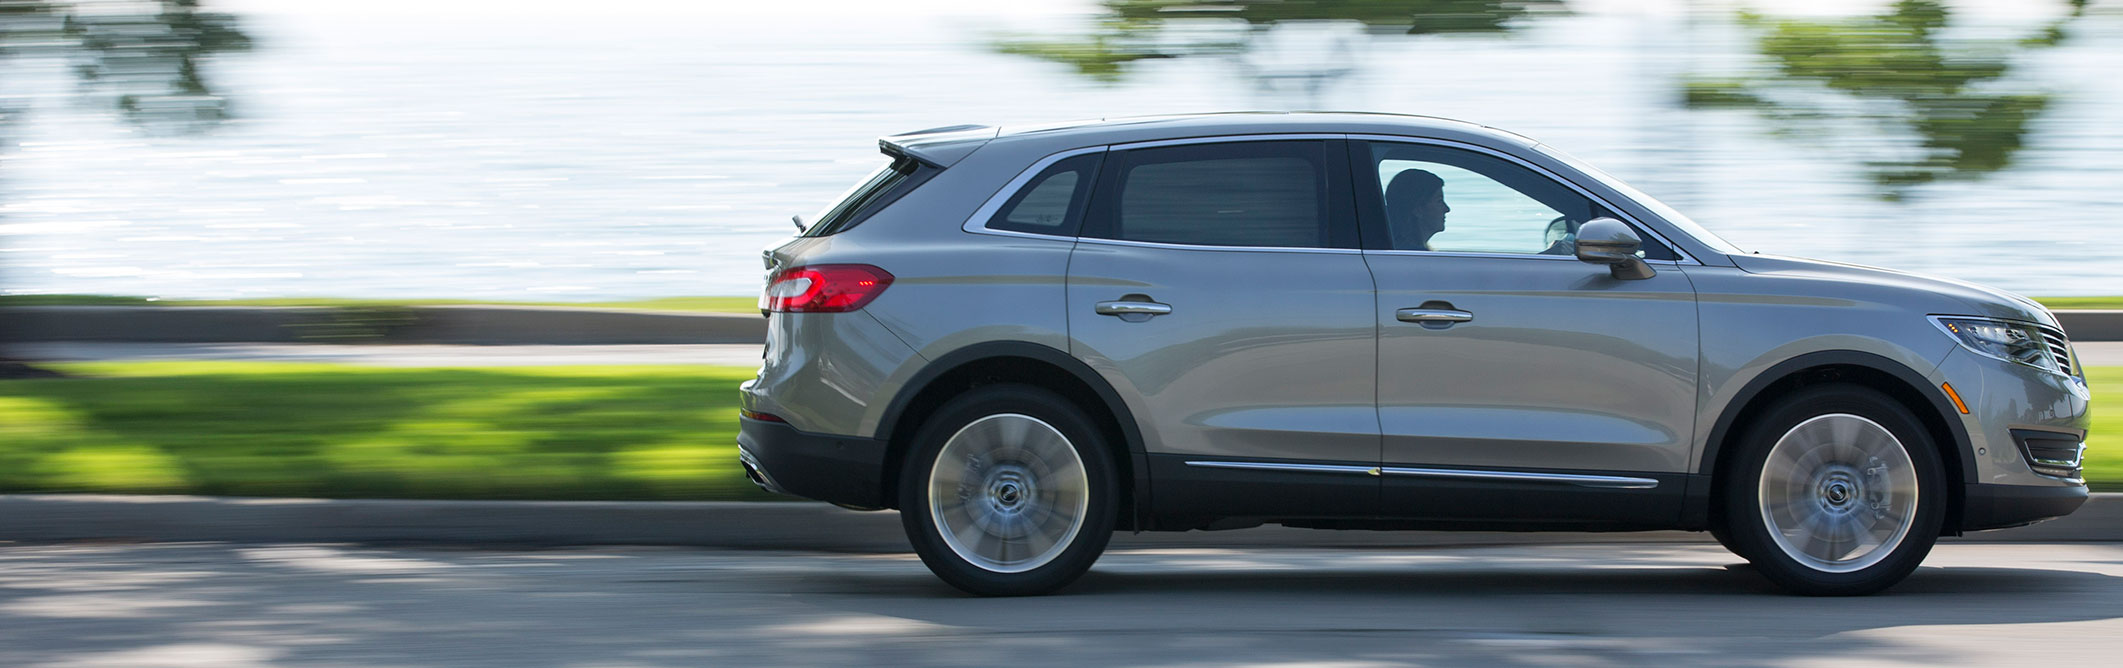 The  Lincoln Mkx Is Not A Luxury Vehicle No Matter How Hard It Tries Bloomberg